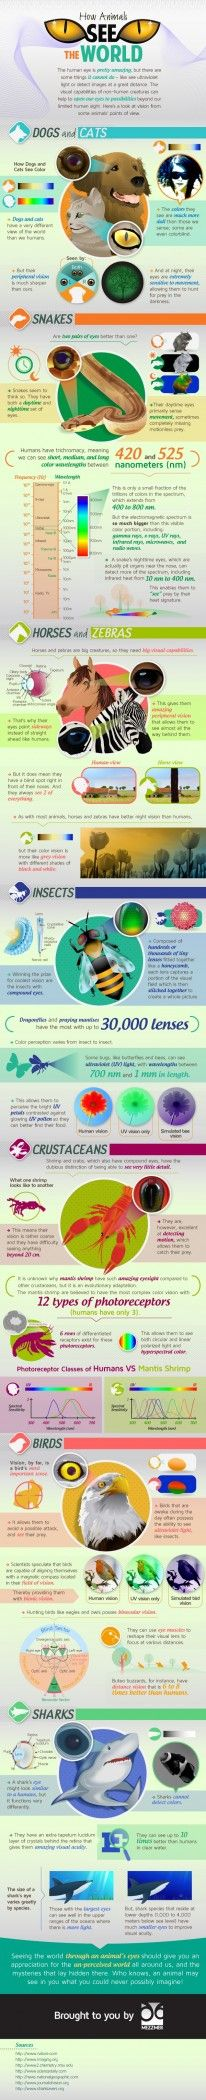 How animals see the world (Infographic)